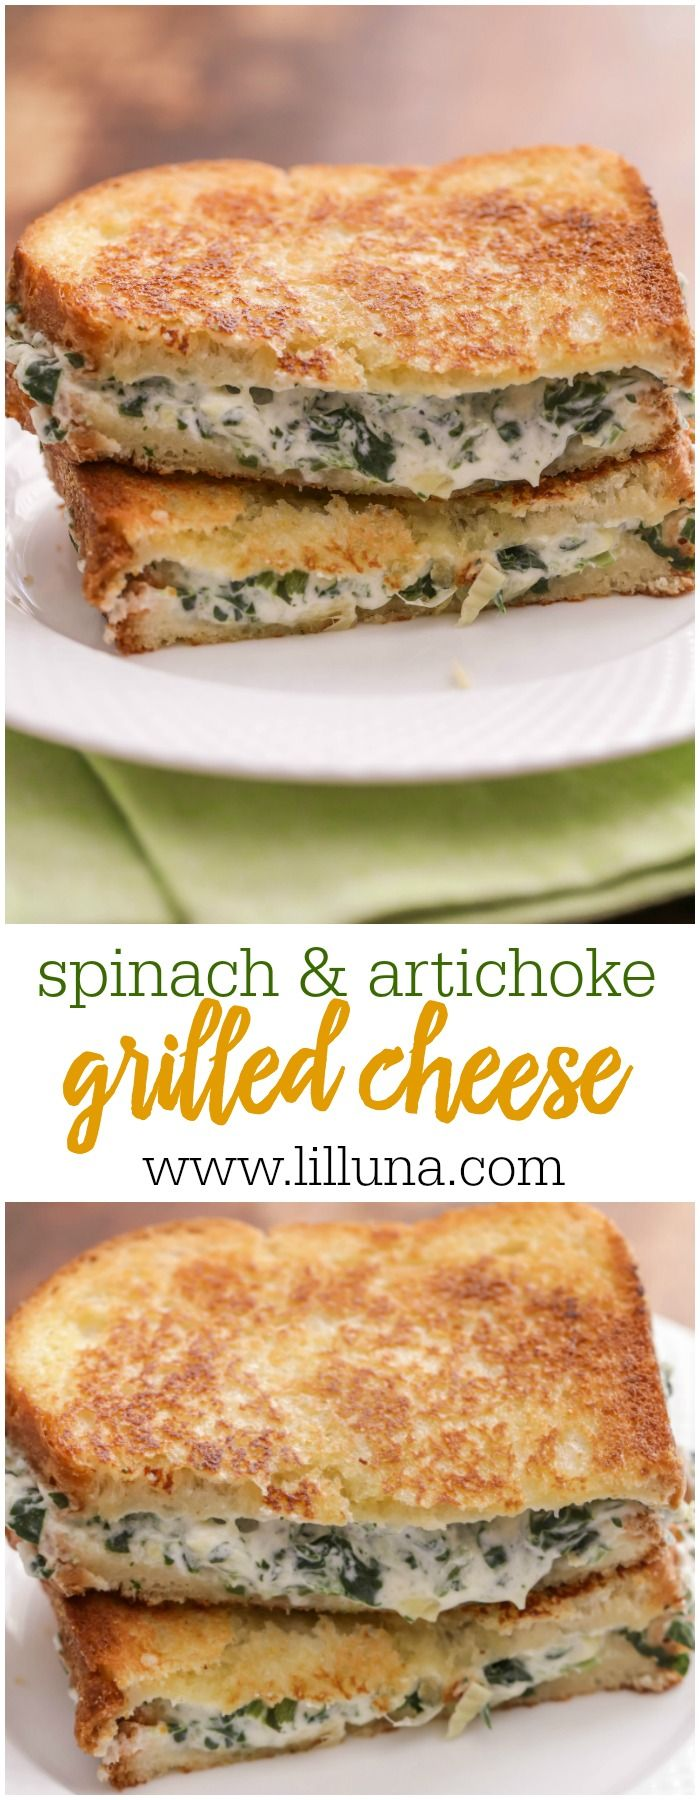 Bring one of your favorite appetizers to lunch or dinner with these Spinach and Artichoke Grilled Cheese Sandwiches. They are so cheesy and delicious!